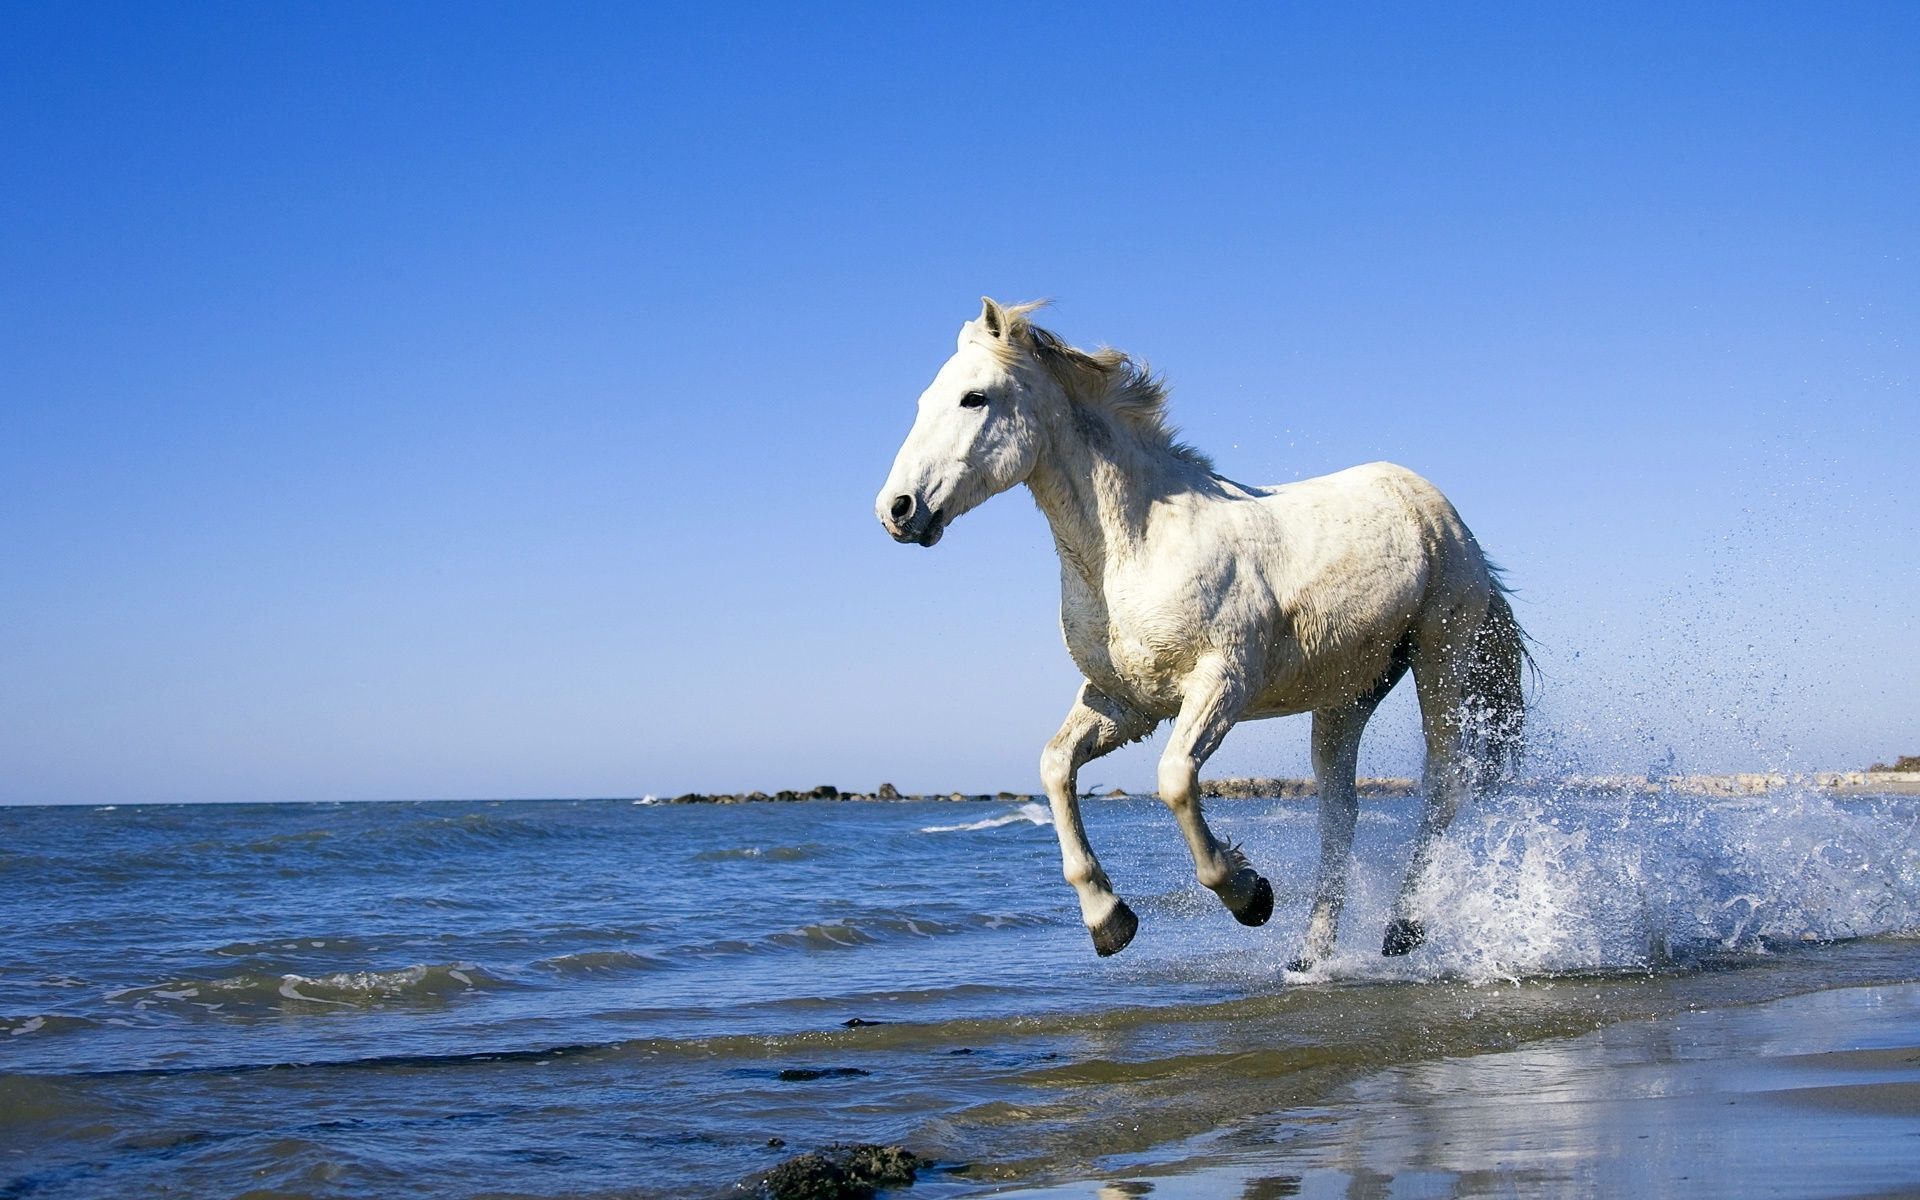 A Horse On The Beach